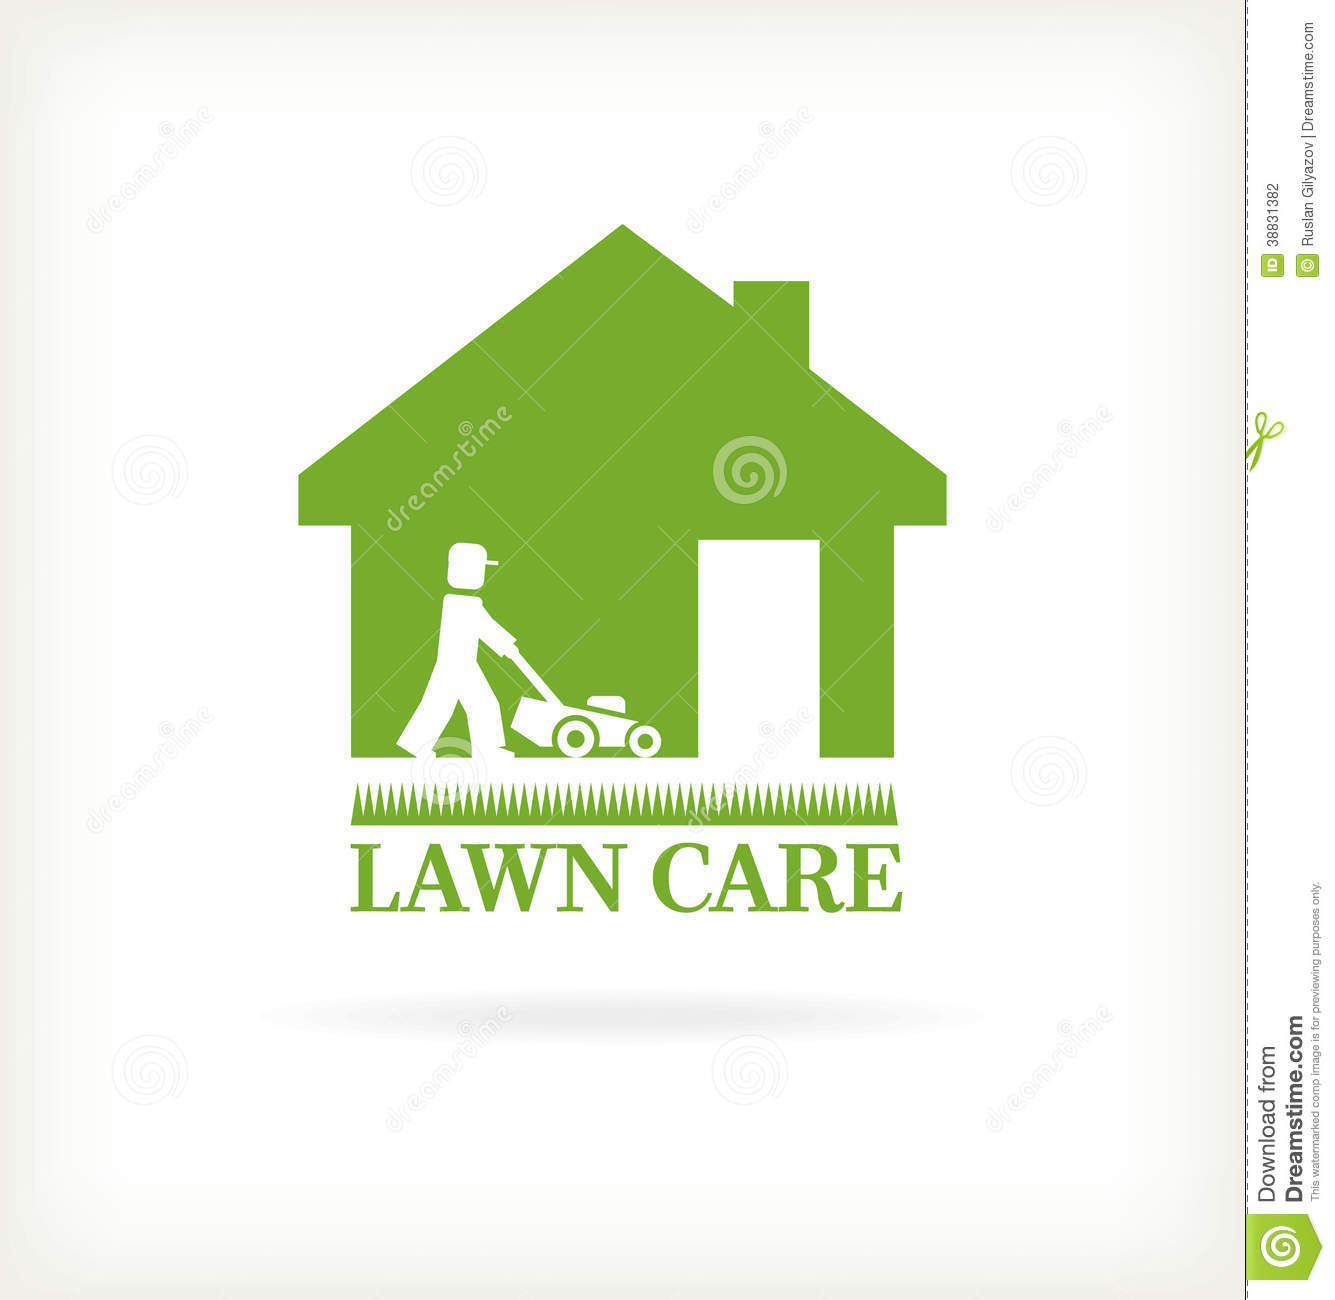 Lawn care stock clipart picture free library Lawn Care Service Clipart - Clipart Kid picture free library